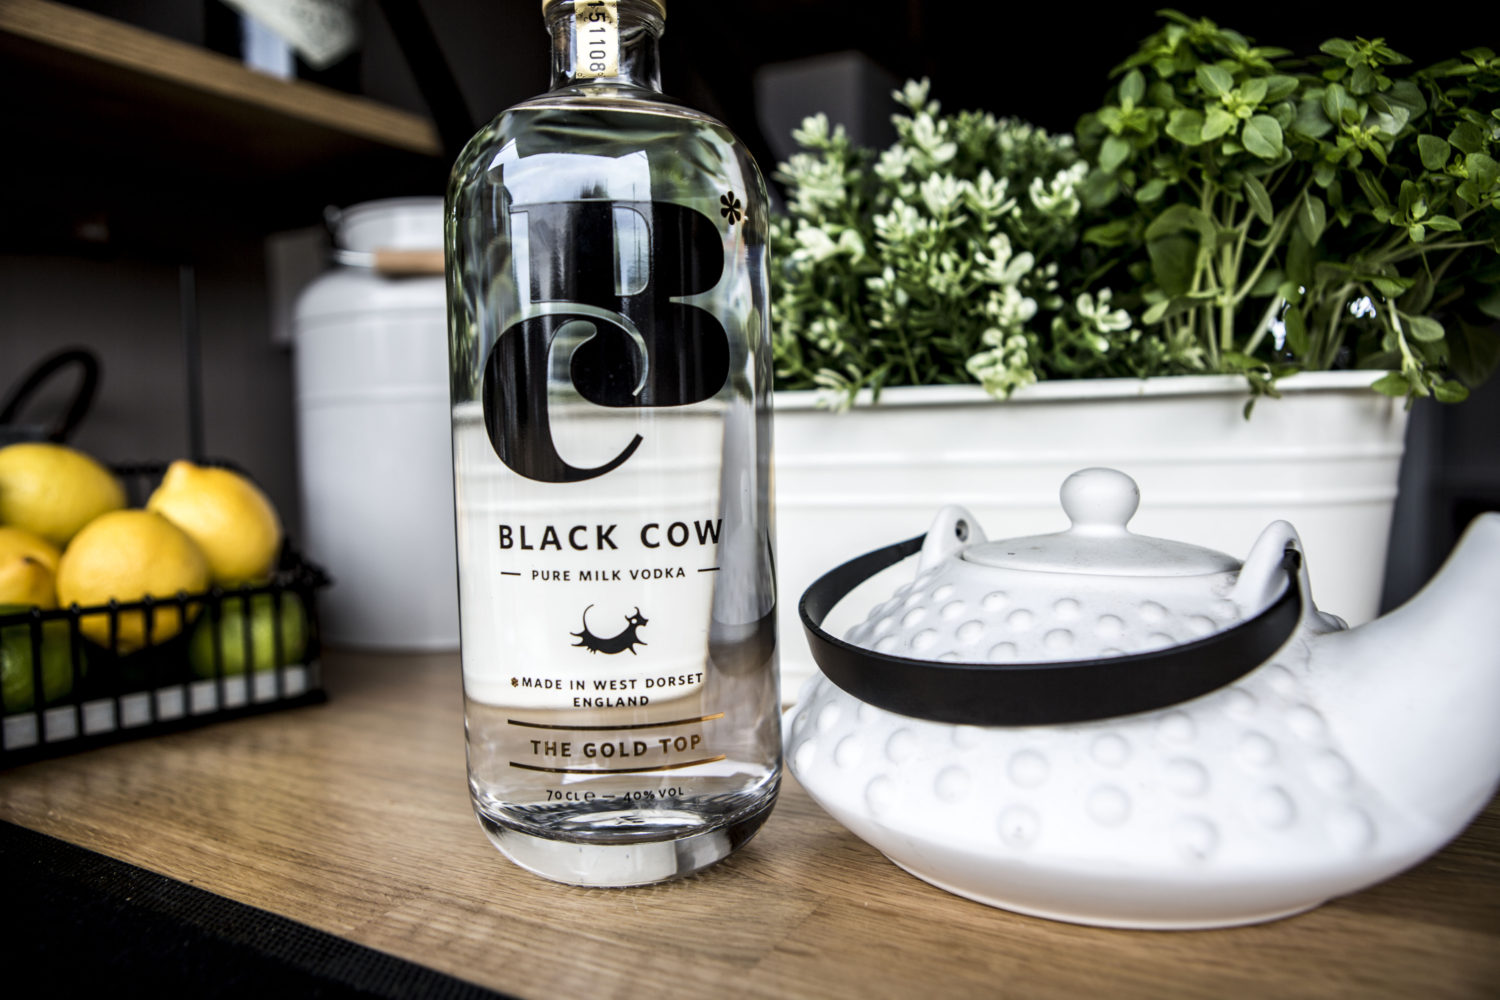 The Black Cow Vodka on The Paddock mobile bar